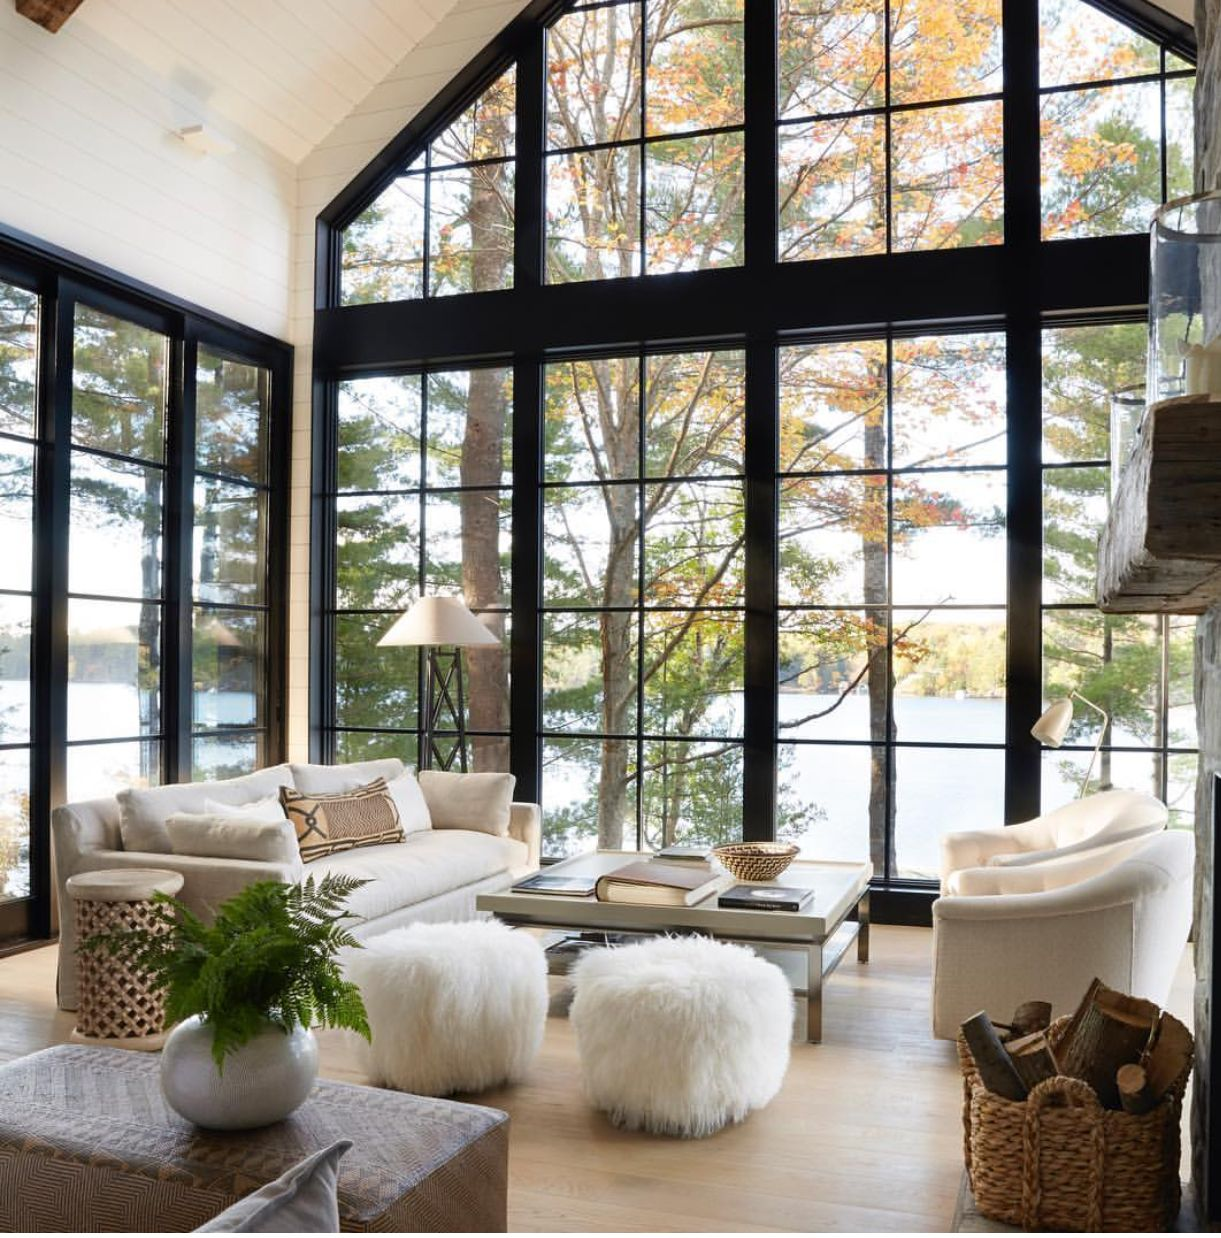 Large Windows Light And Airy Living Room Open Concept Window Wall Open Living Room Design House Design Dream House